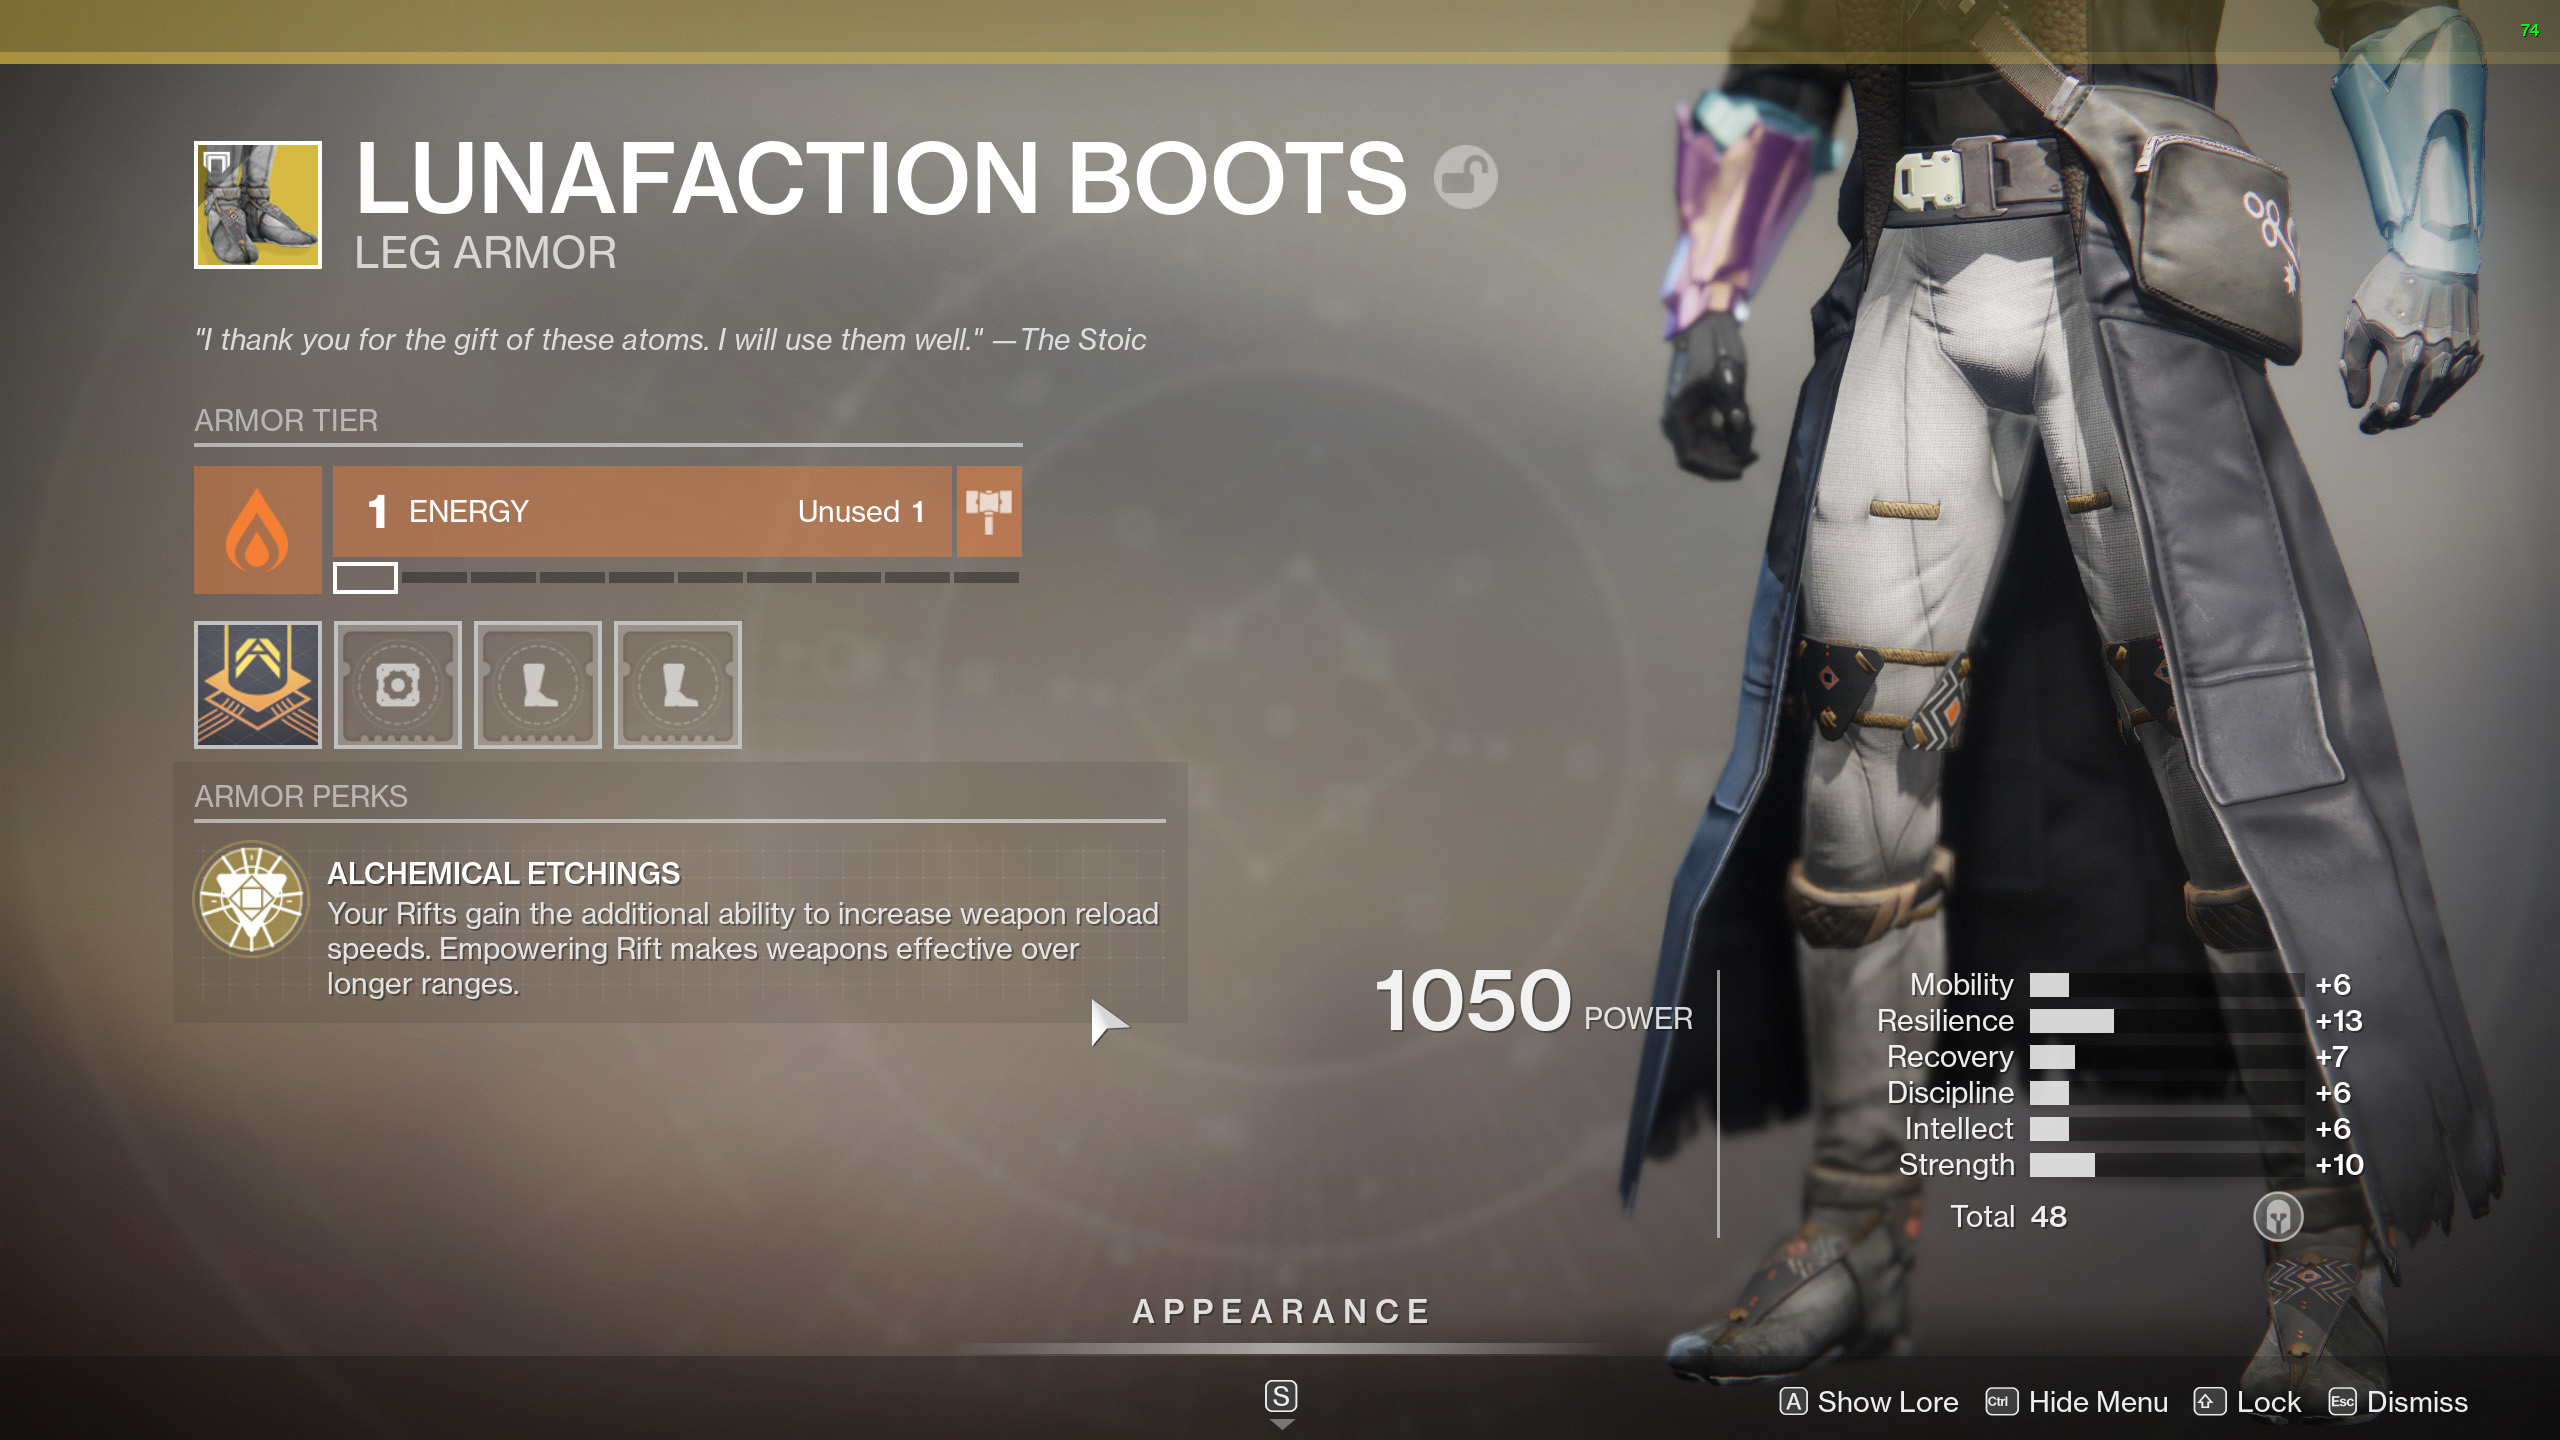 destiny 2 lunafaction boots perk alchemical etchings